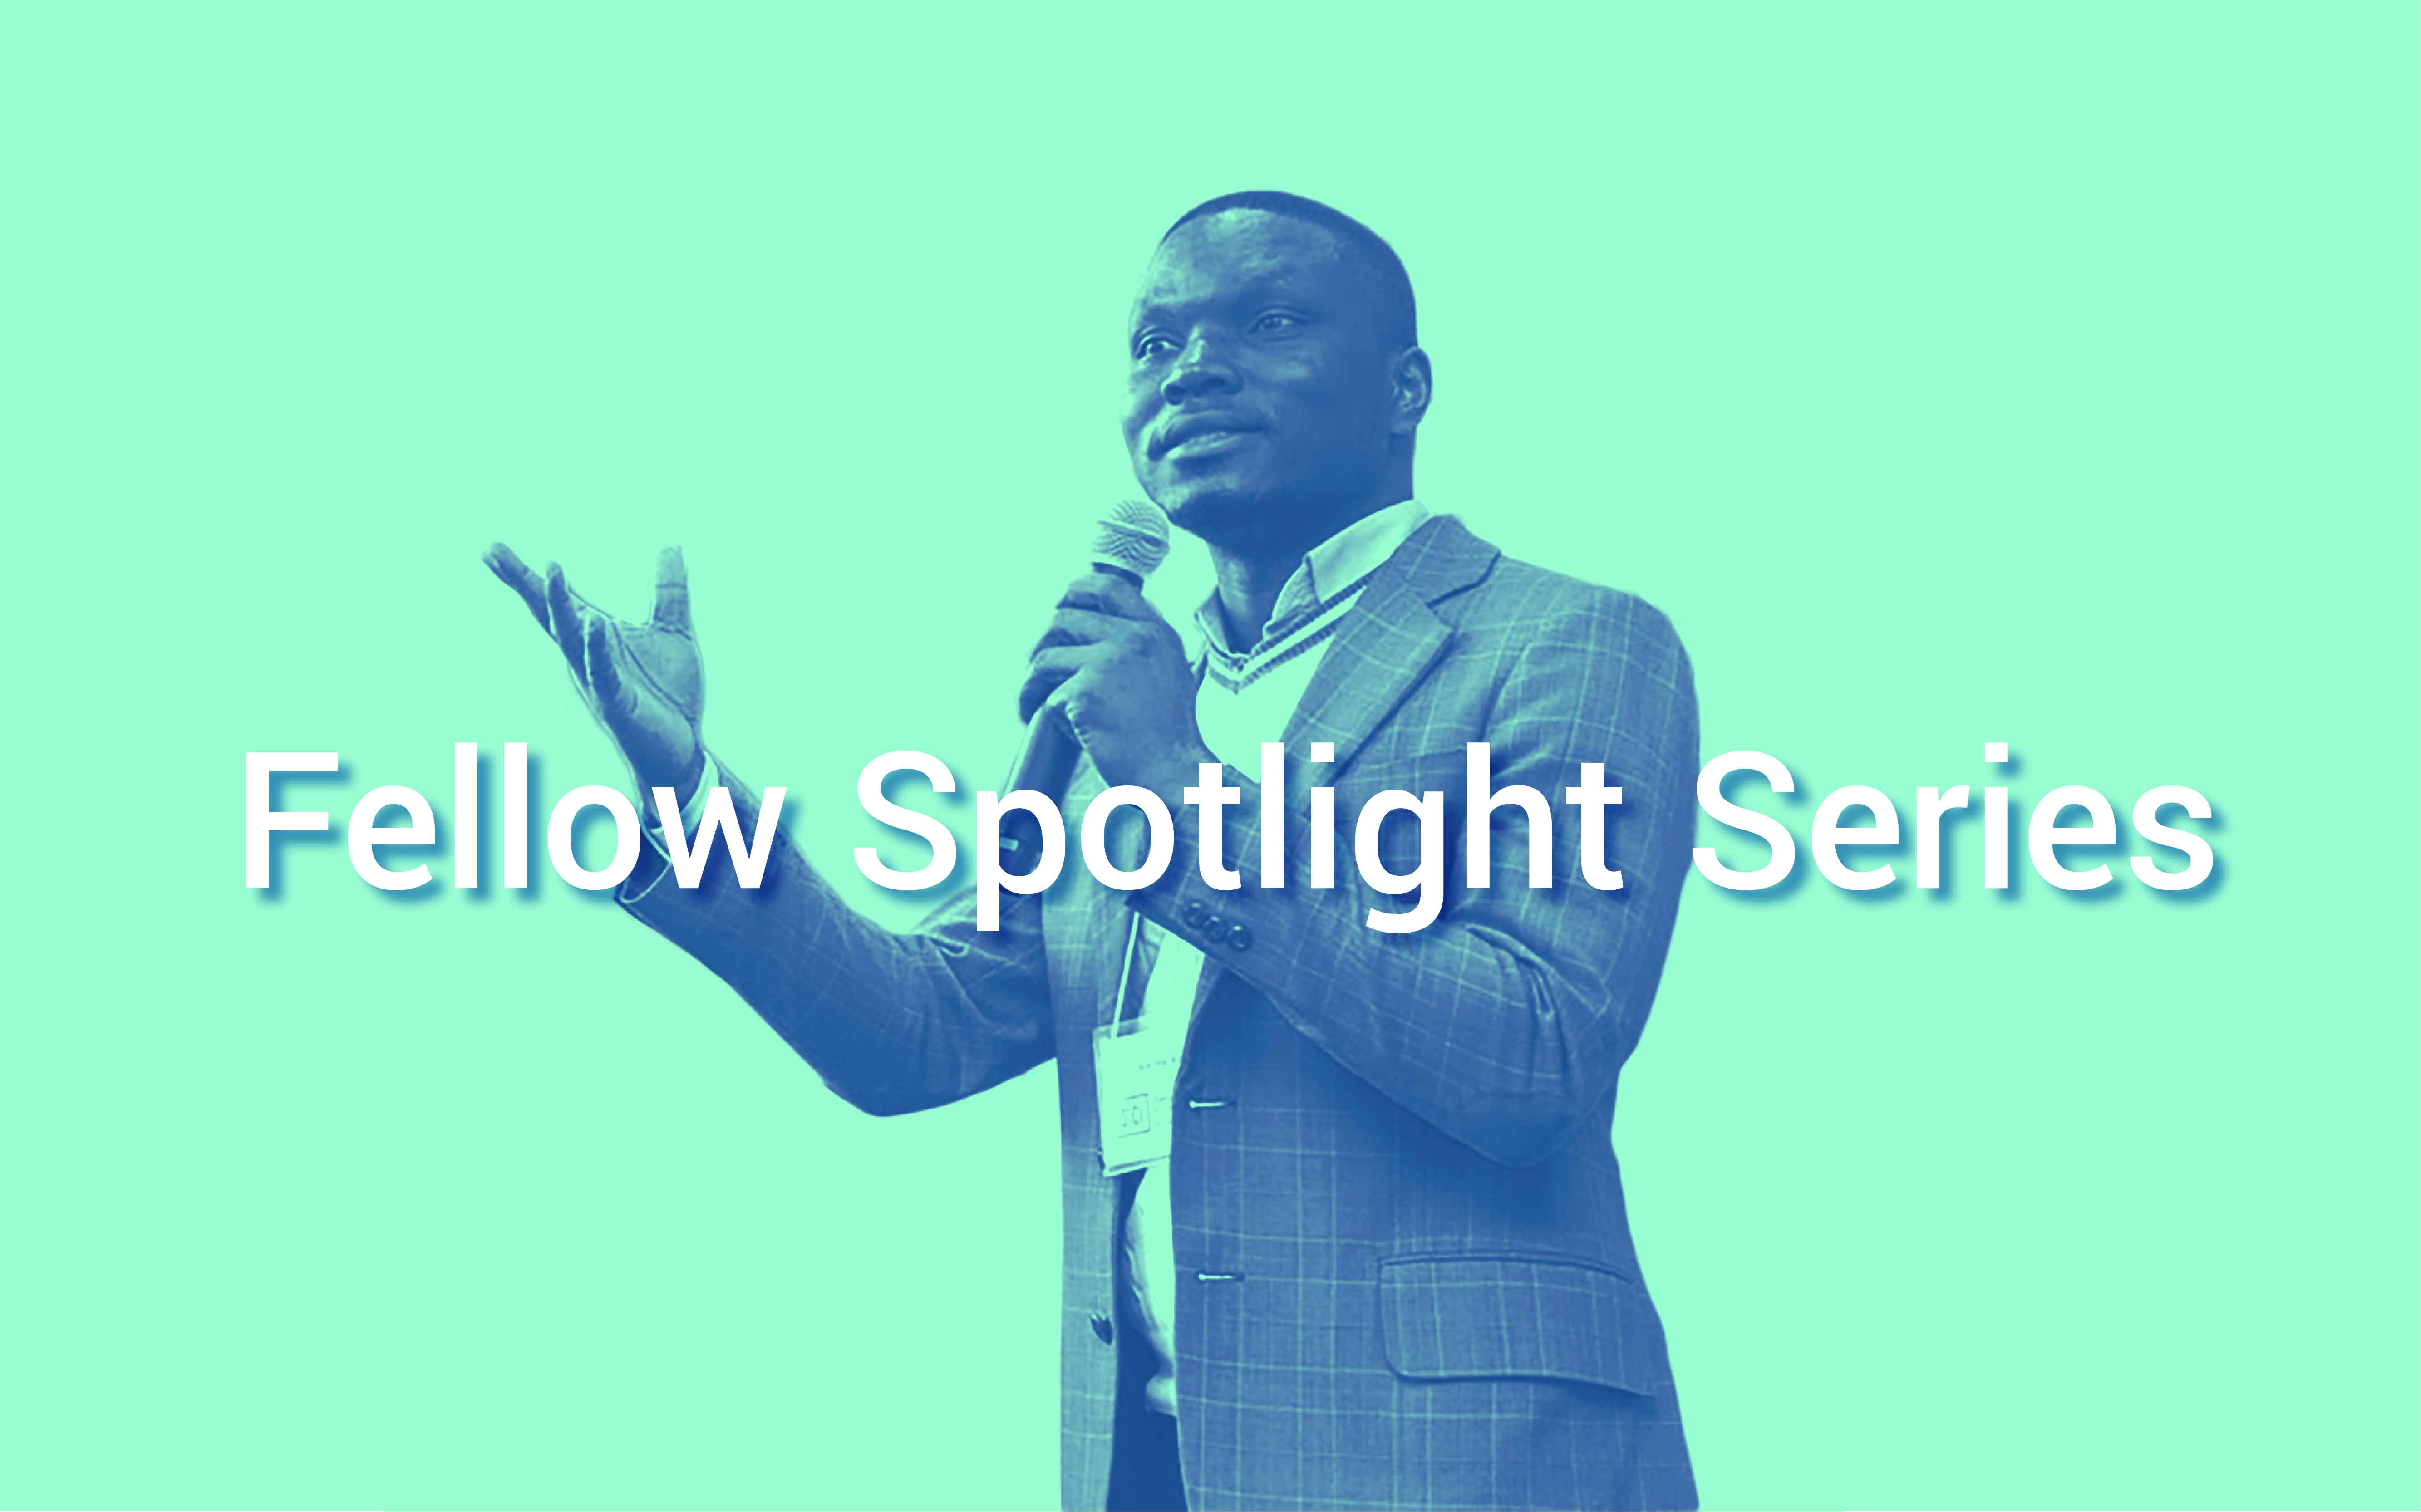 Introducing the Fellow Spotlight Series